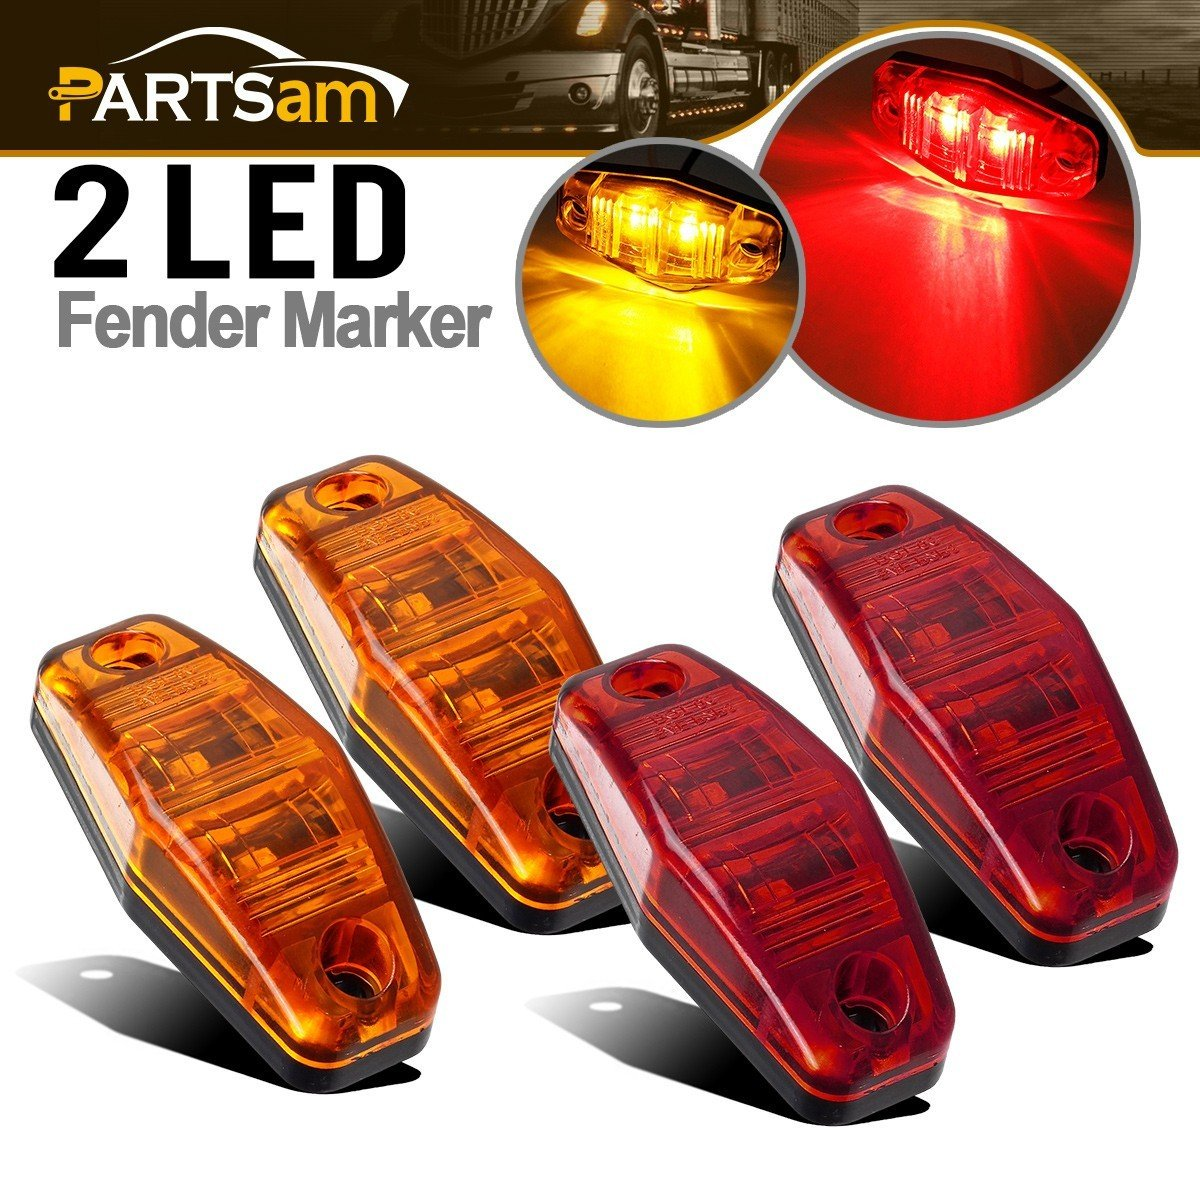 Side Marker Assemblies Light Automotive 1962 Ford Truck Brake Lamp Wiring Partsam 2 Amber Red 254x106